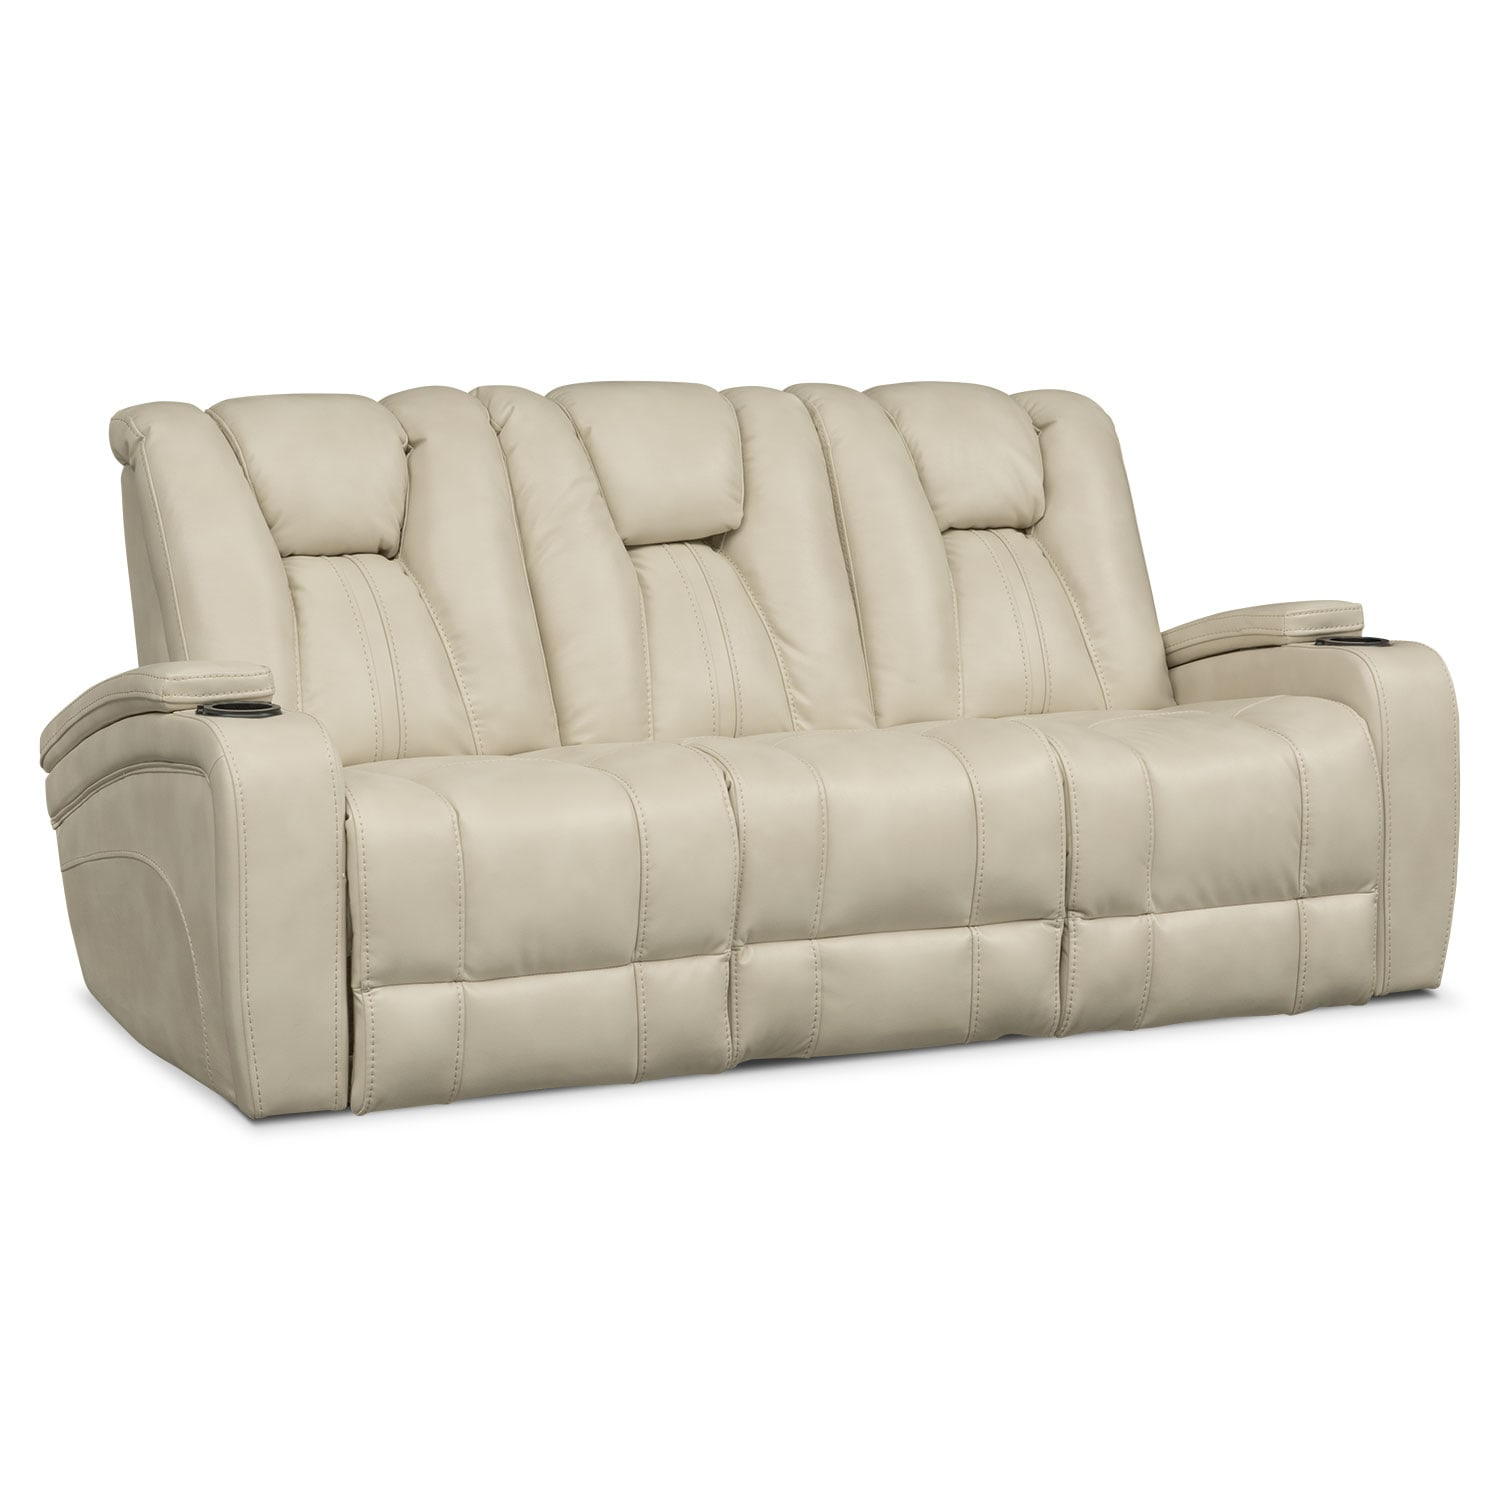 Pulsar Dual Power Reclining Sofa   Cream